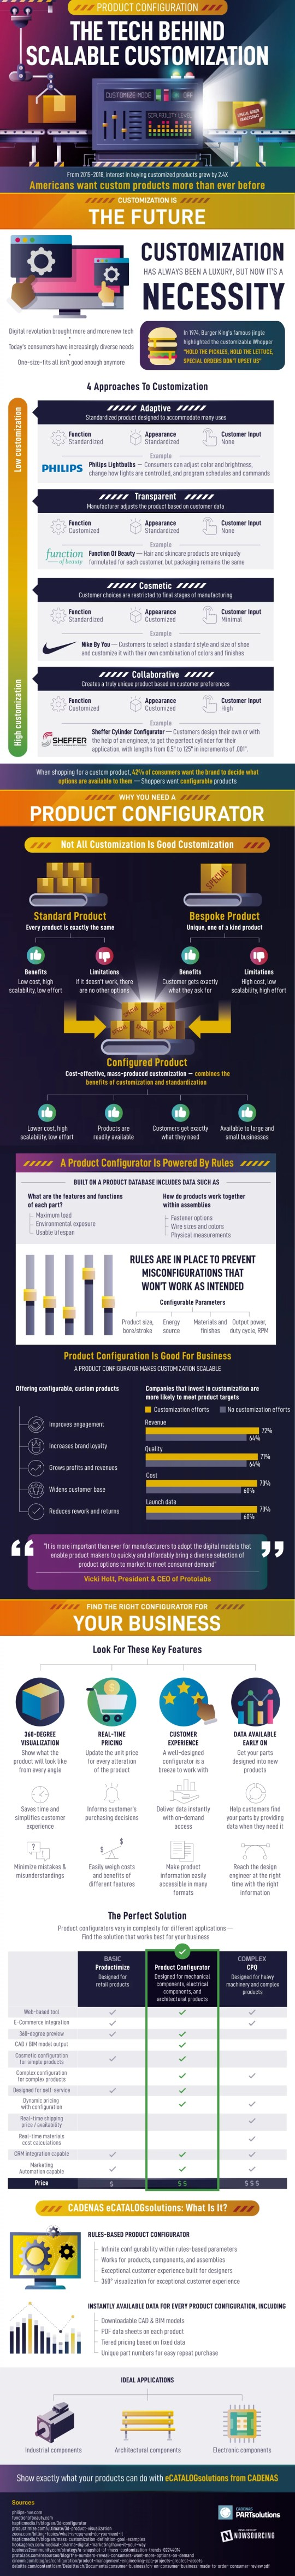 An infographic detailing how a product configurator can enable scalable customization.